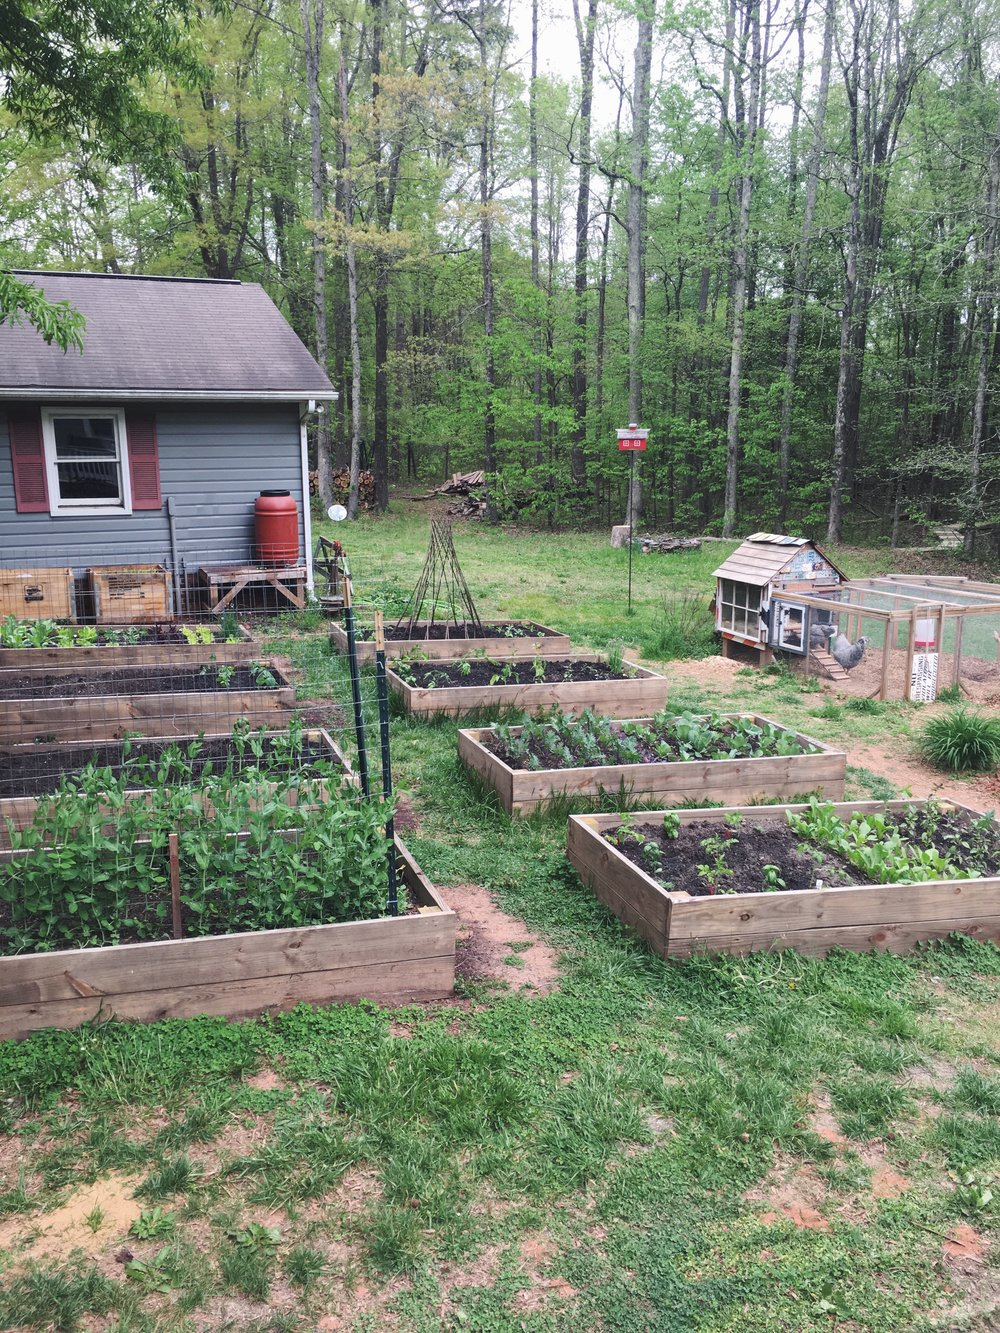 Here we keep our chickens in their run while the new plants establish themselves.